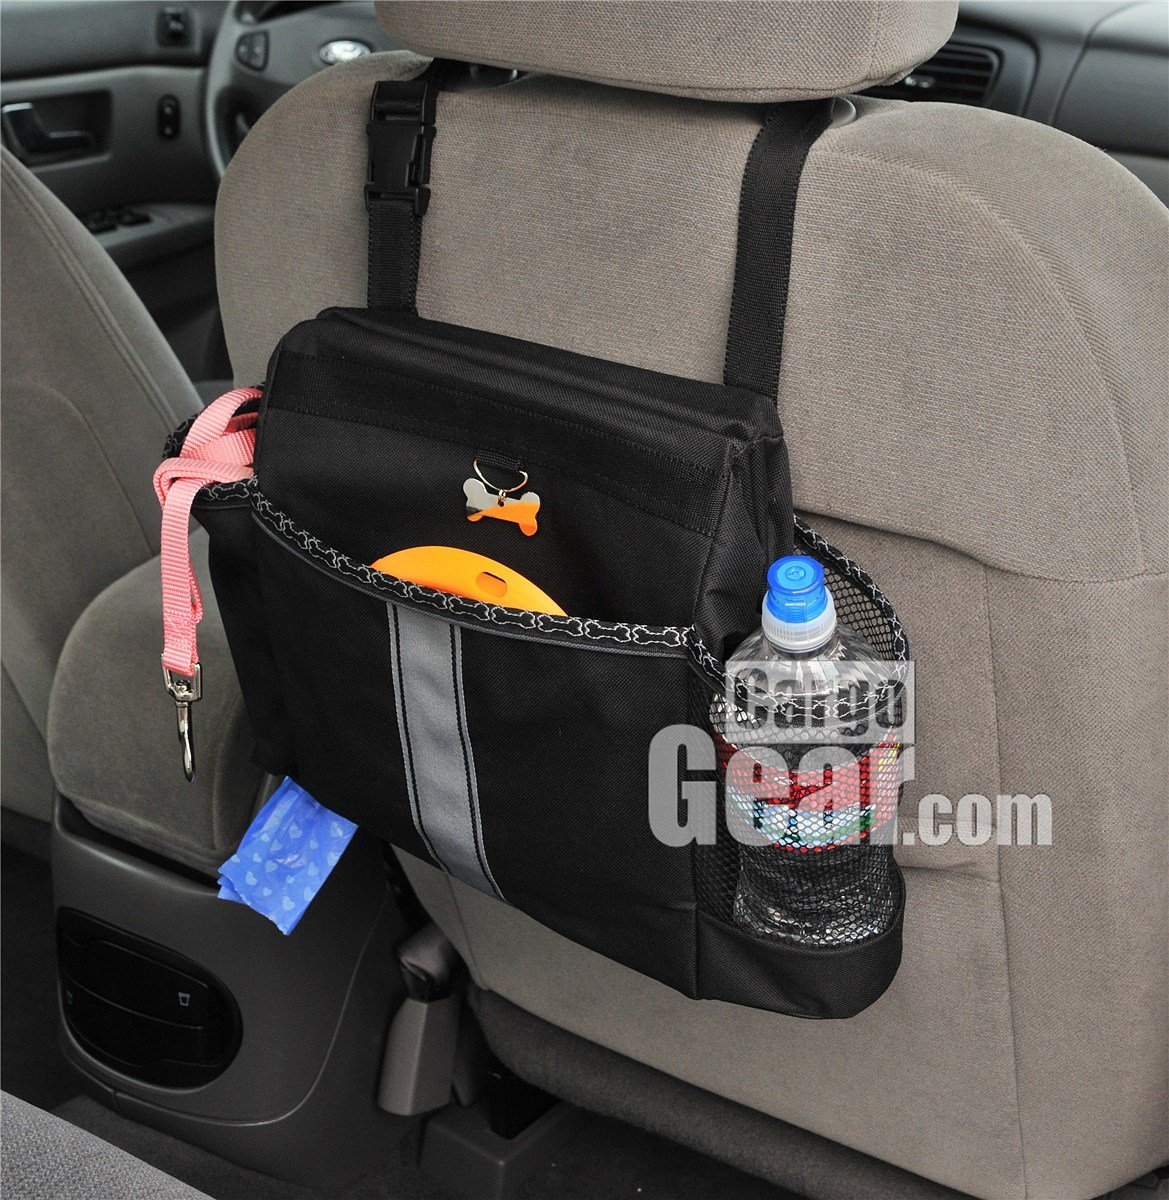 Car Organizer for All Your Dog's Stuff